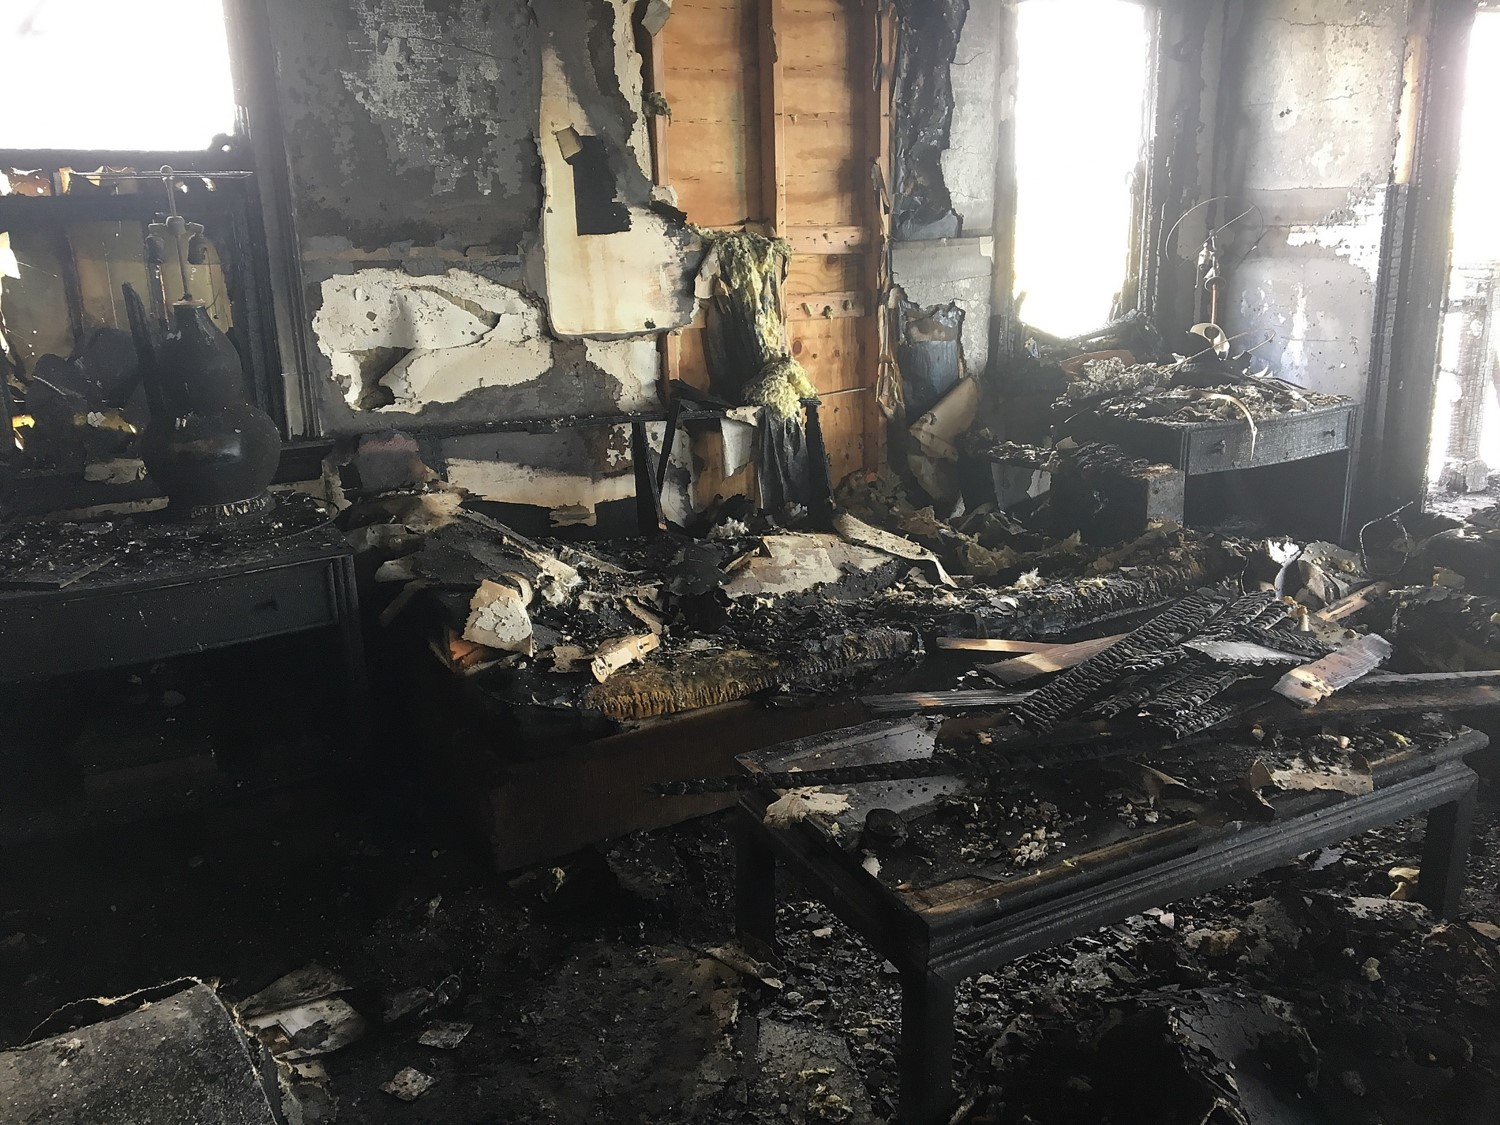 The interior of a home severely affected by a wildfire in California.